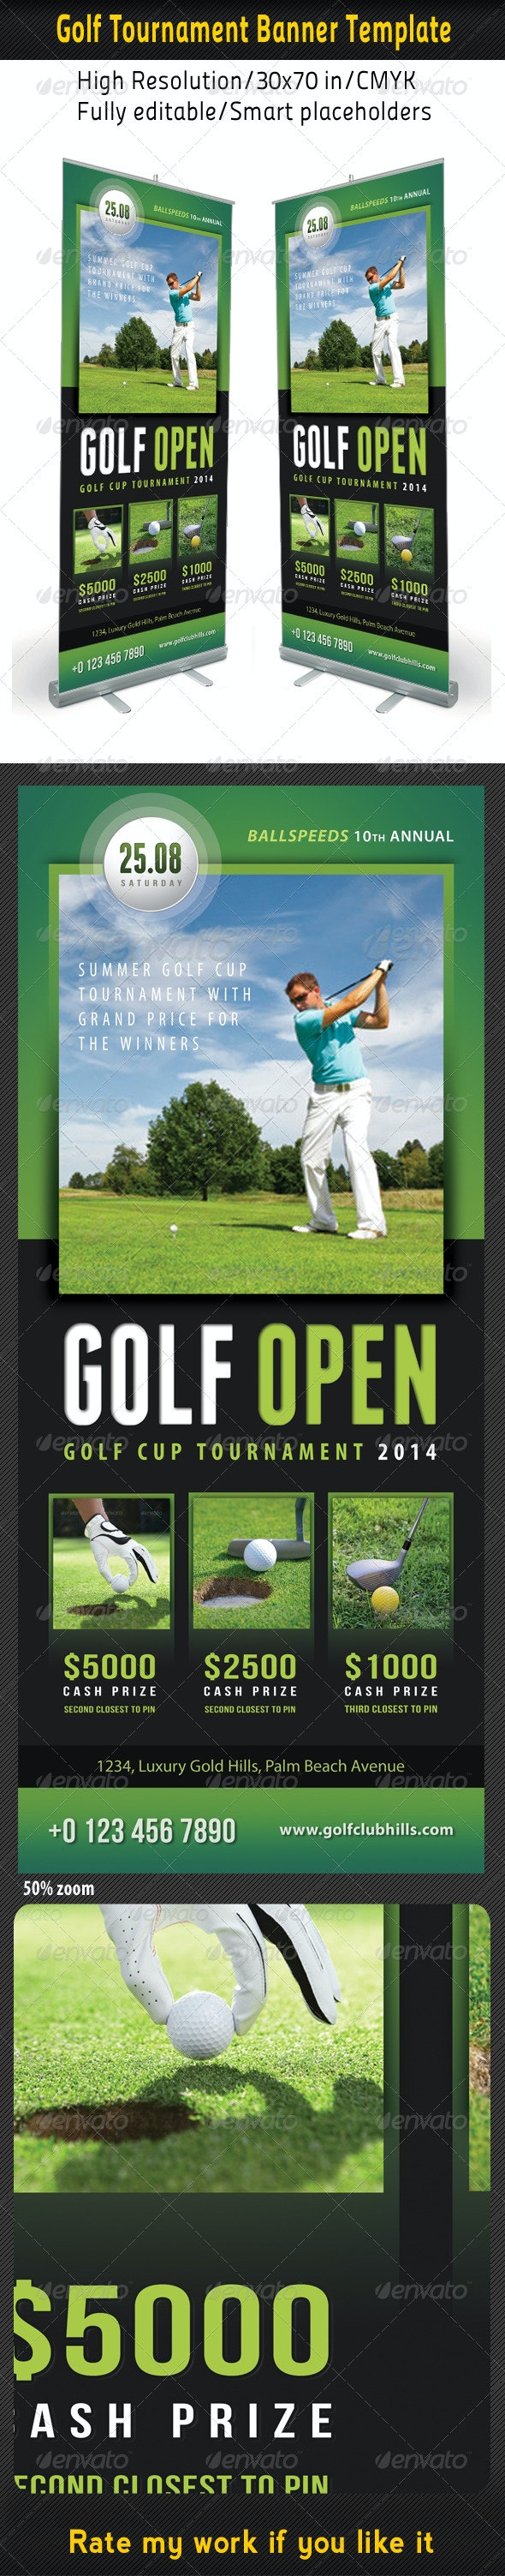 Golf Event Banner Template 02 - Signage Print Templates